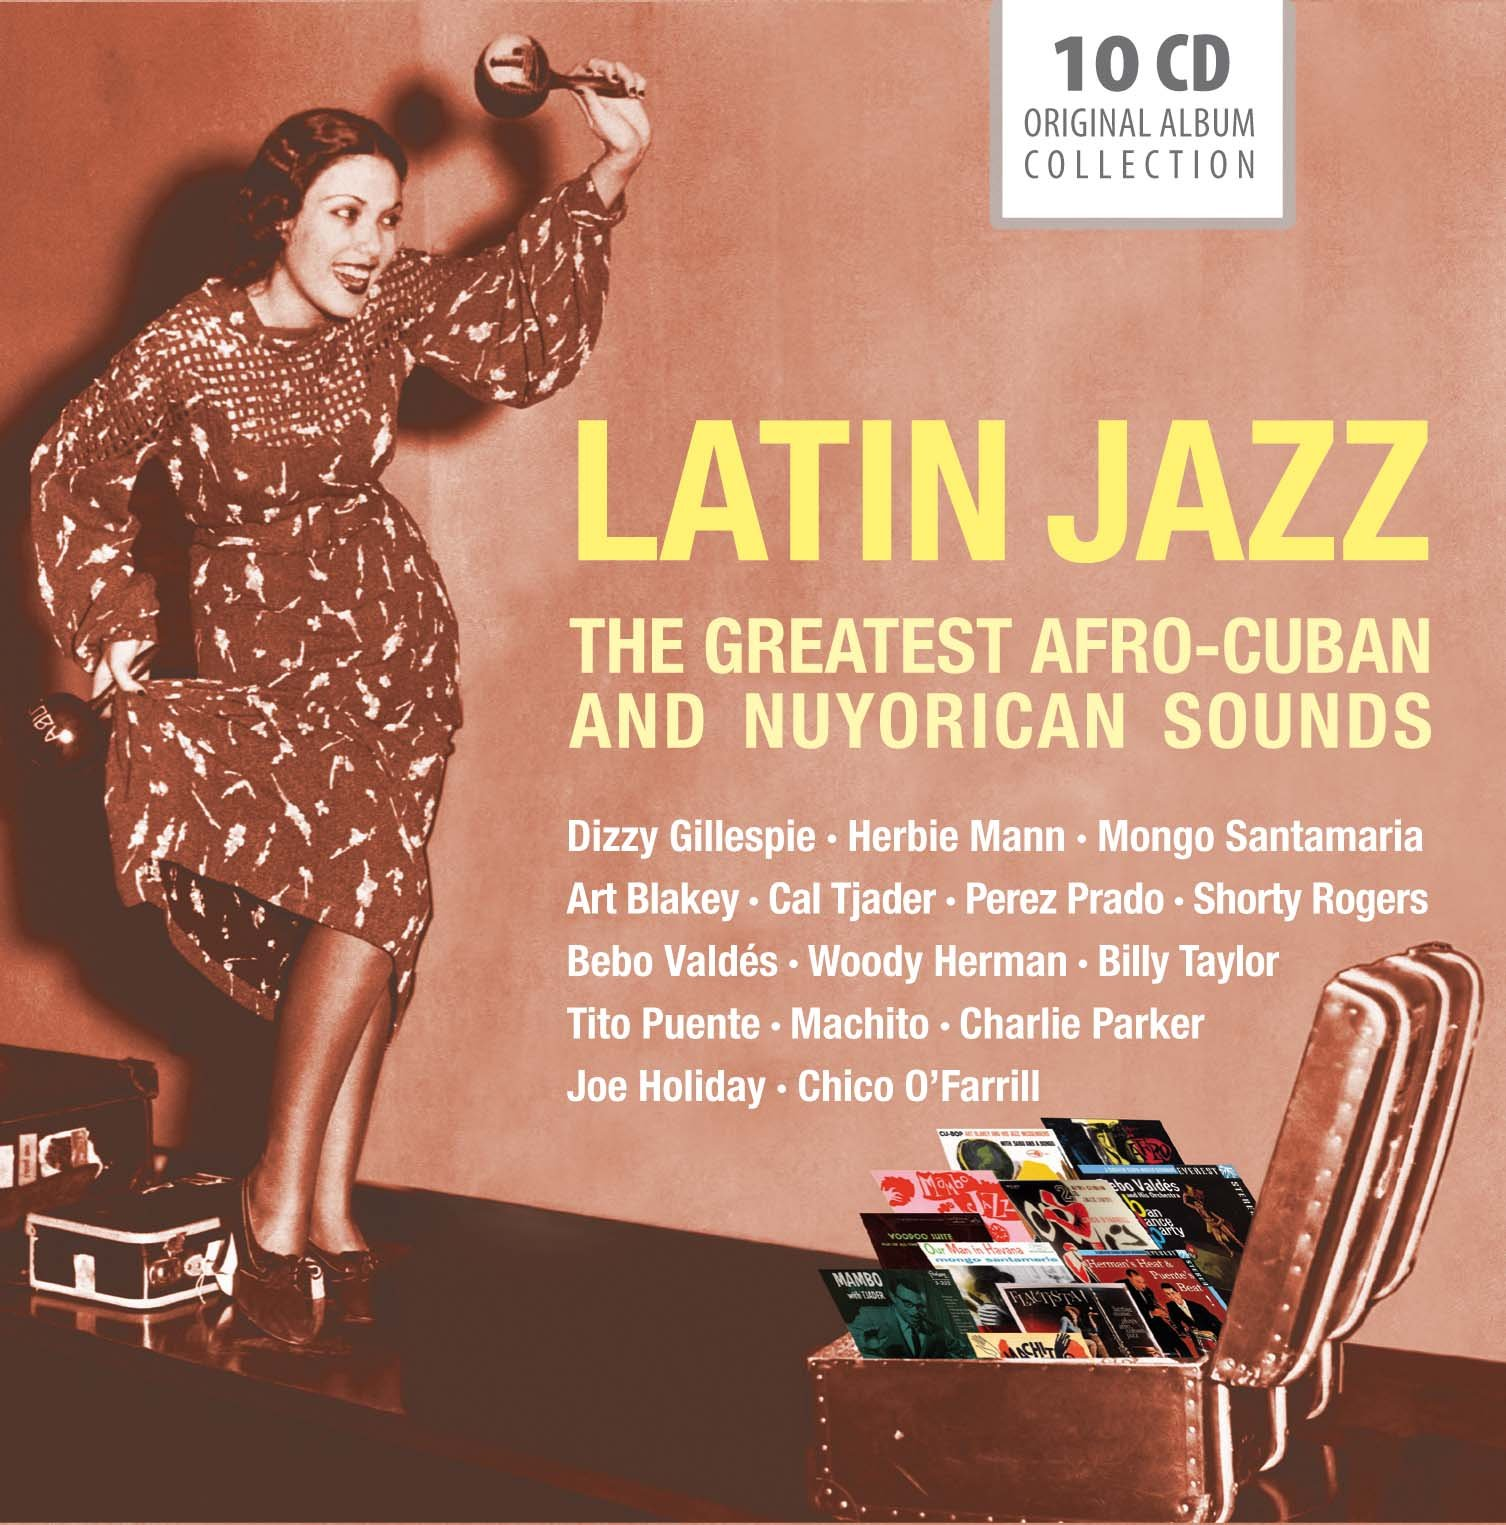 Latin Jazz: The Greatest Afro Cuban and Nuyorican Sounds by Imports